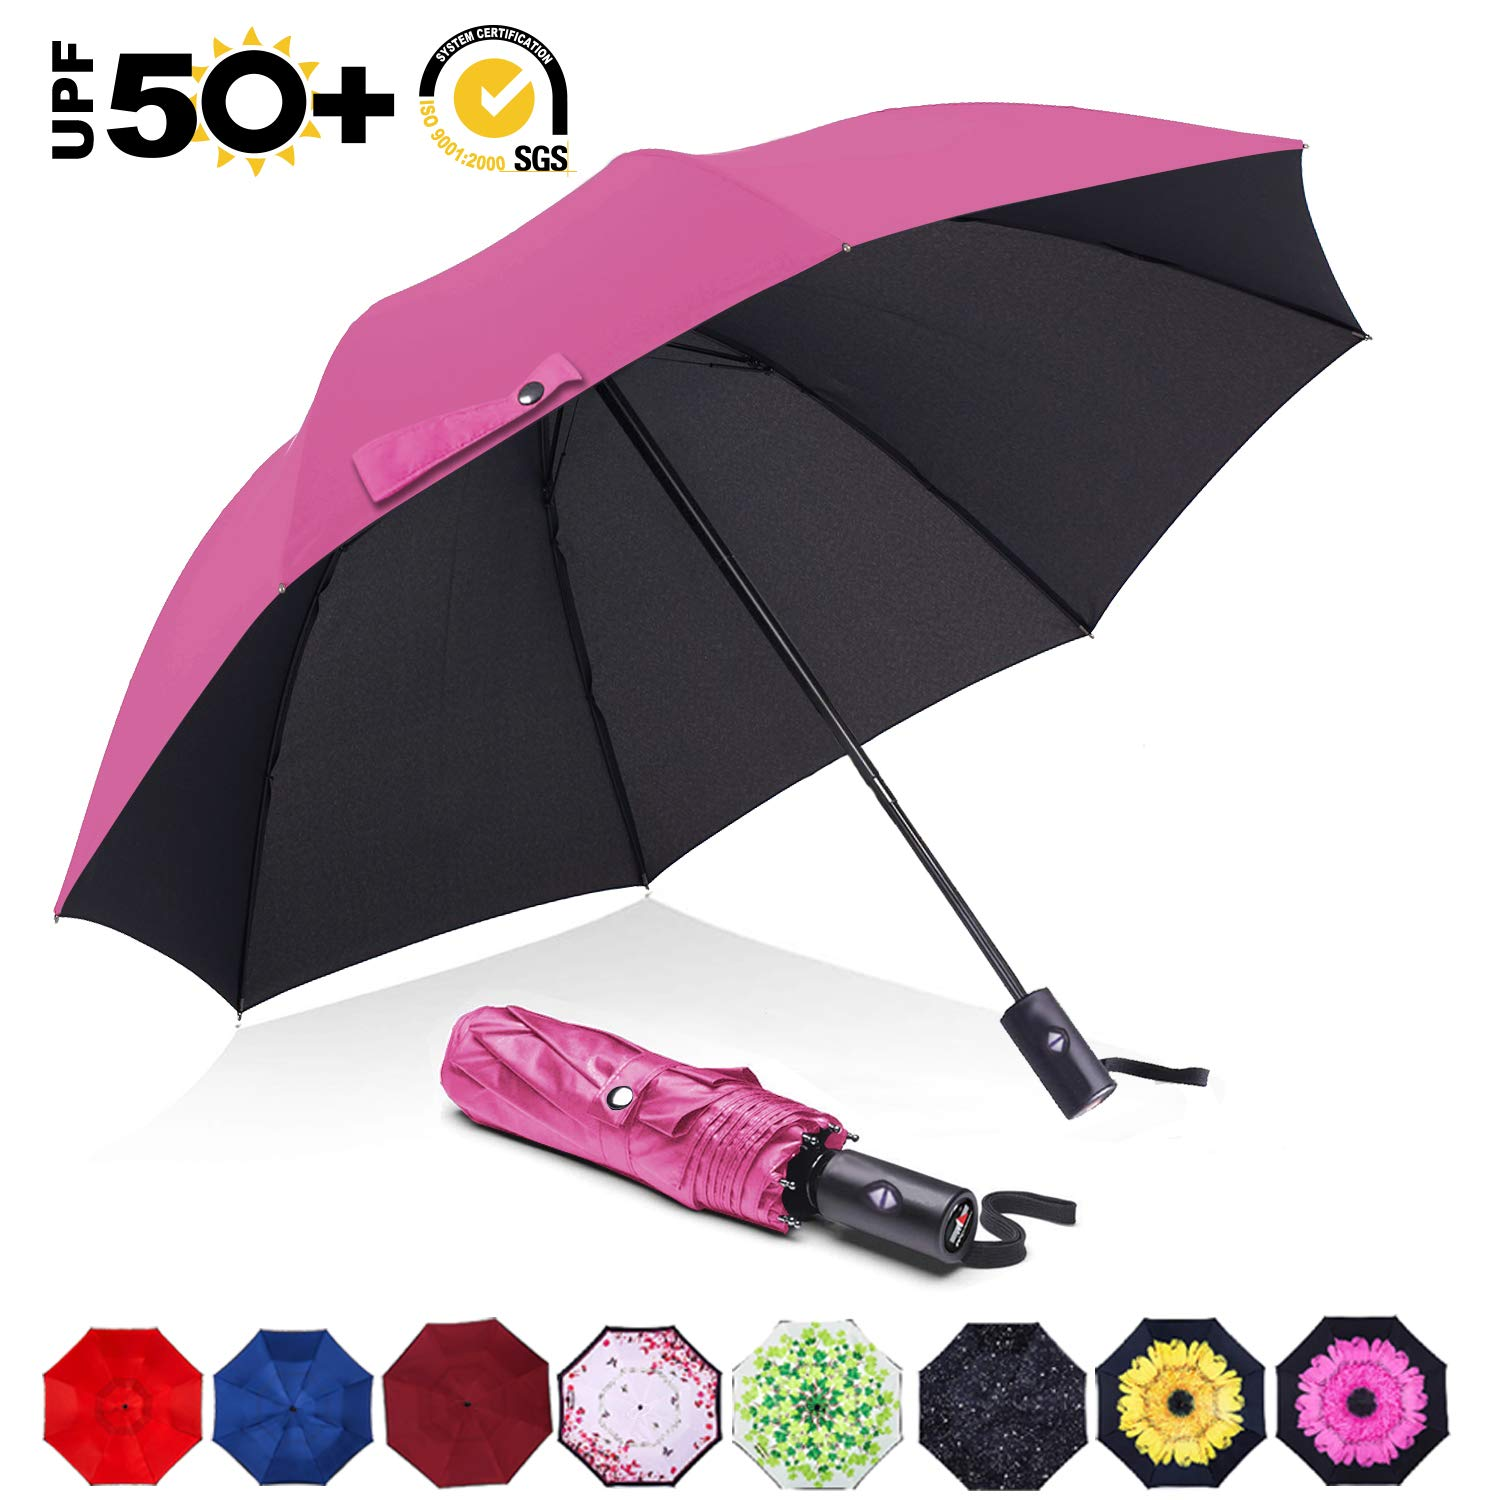 "CDM product ABCCANOPY Umbrella Compact Rain&Wind Teflon Repellent Umbrellas Sun Protection with Black Glue Anti UV Coating Travel Auto Folding Umbrella, Blocking UV 99.98%,39"",Peach pink small thumbnail image"